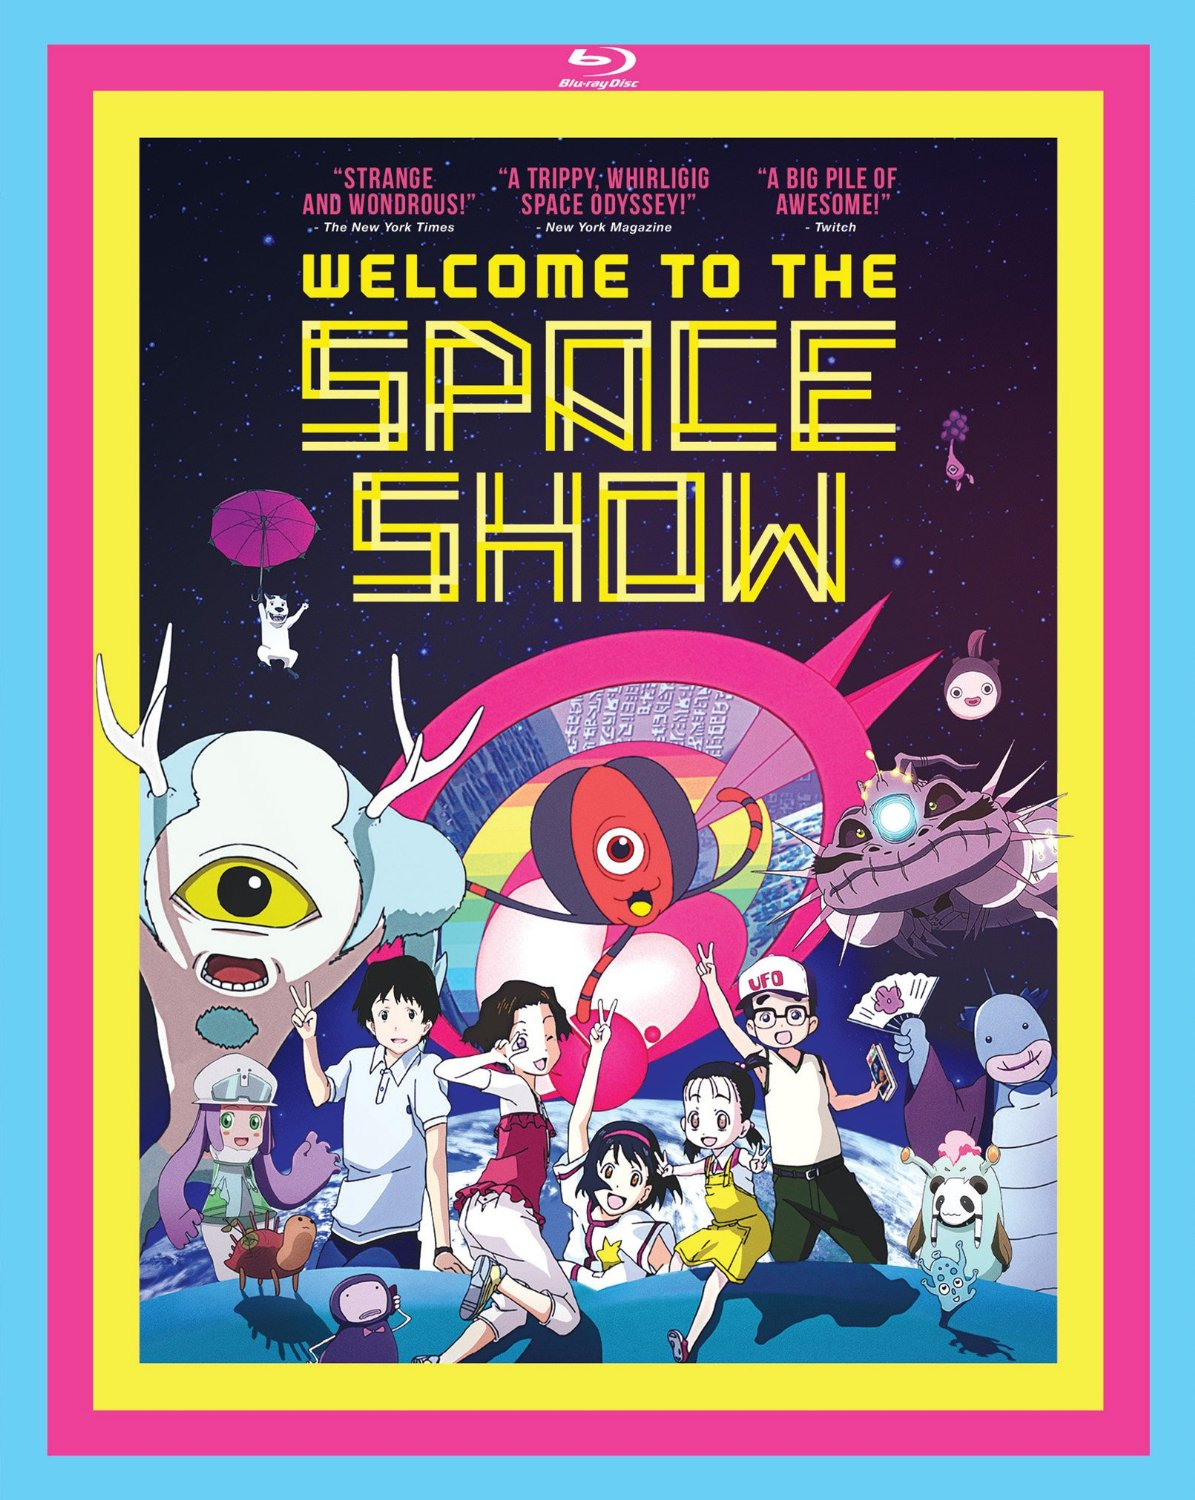 Welcome to the Space Show Bluray cover